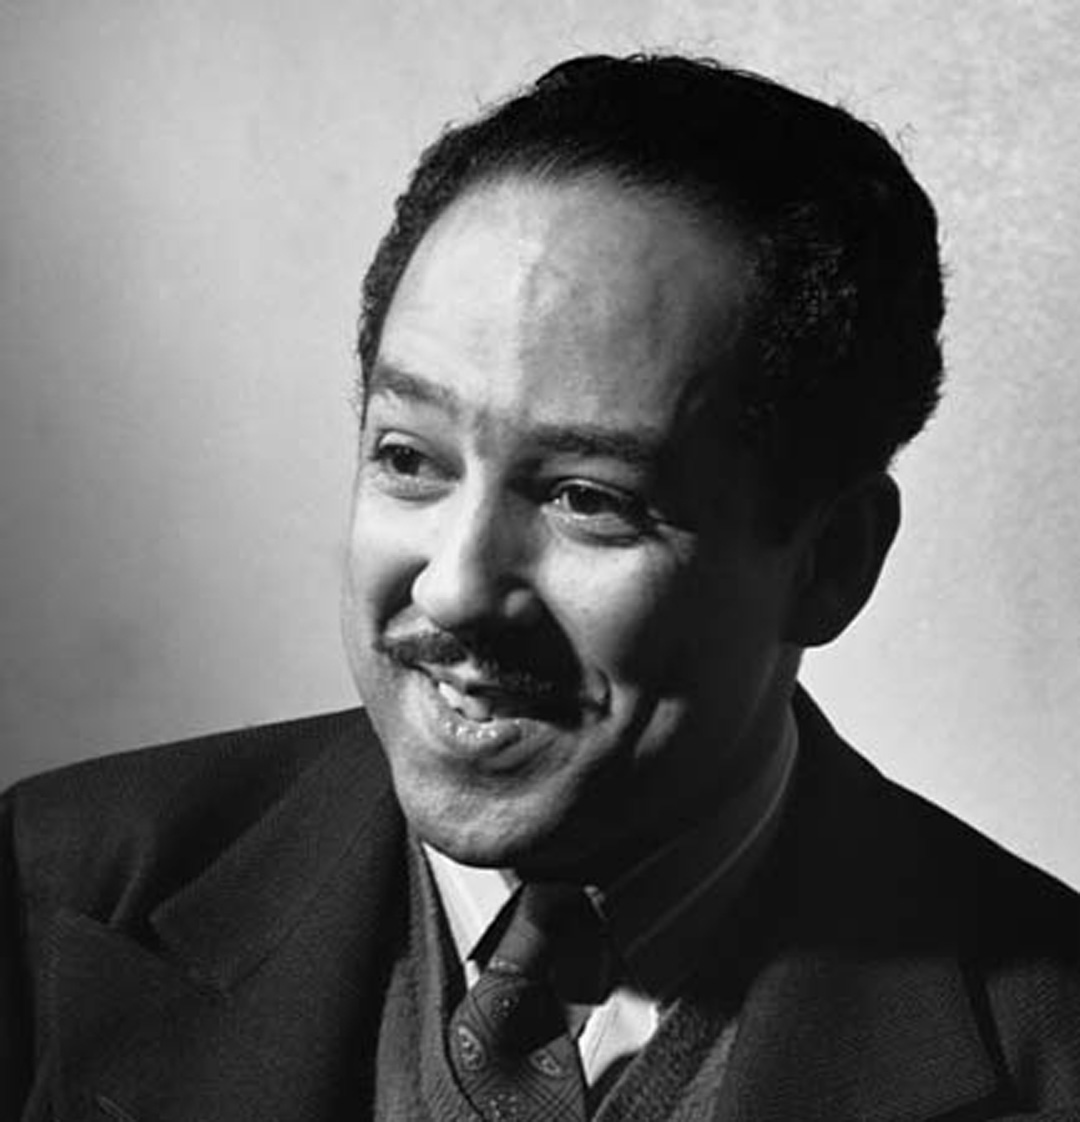 langston hughes note to all nazis fascists and klansmen